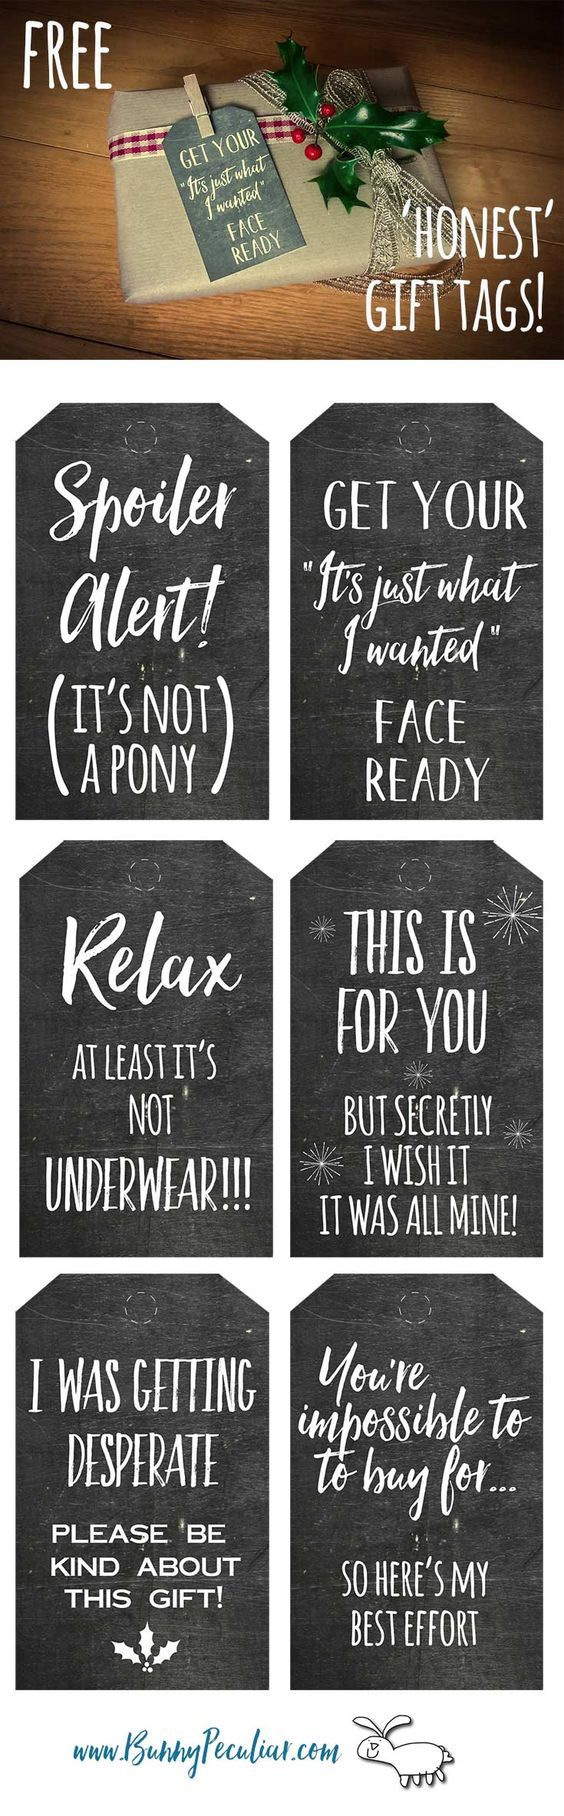 Honest Christmas chalkboard gift tags are what you really need this holiday season. Tired of trying to guess what to buy people at Christmas? Check out these free tags from Bunny Peculiar.: